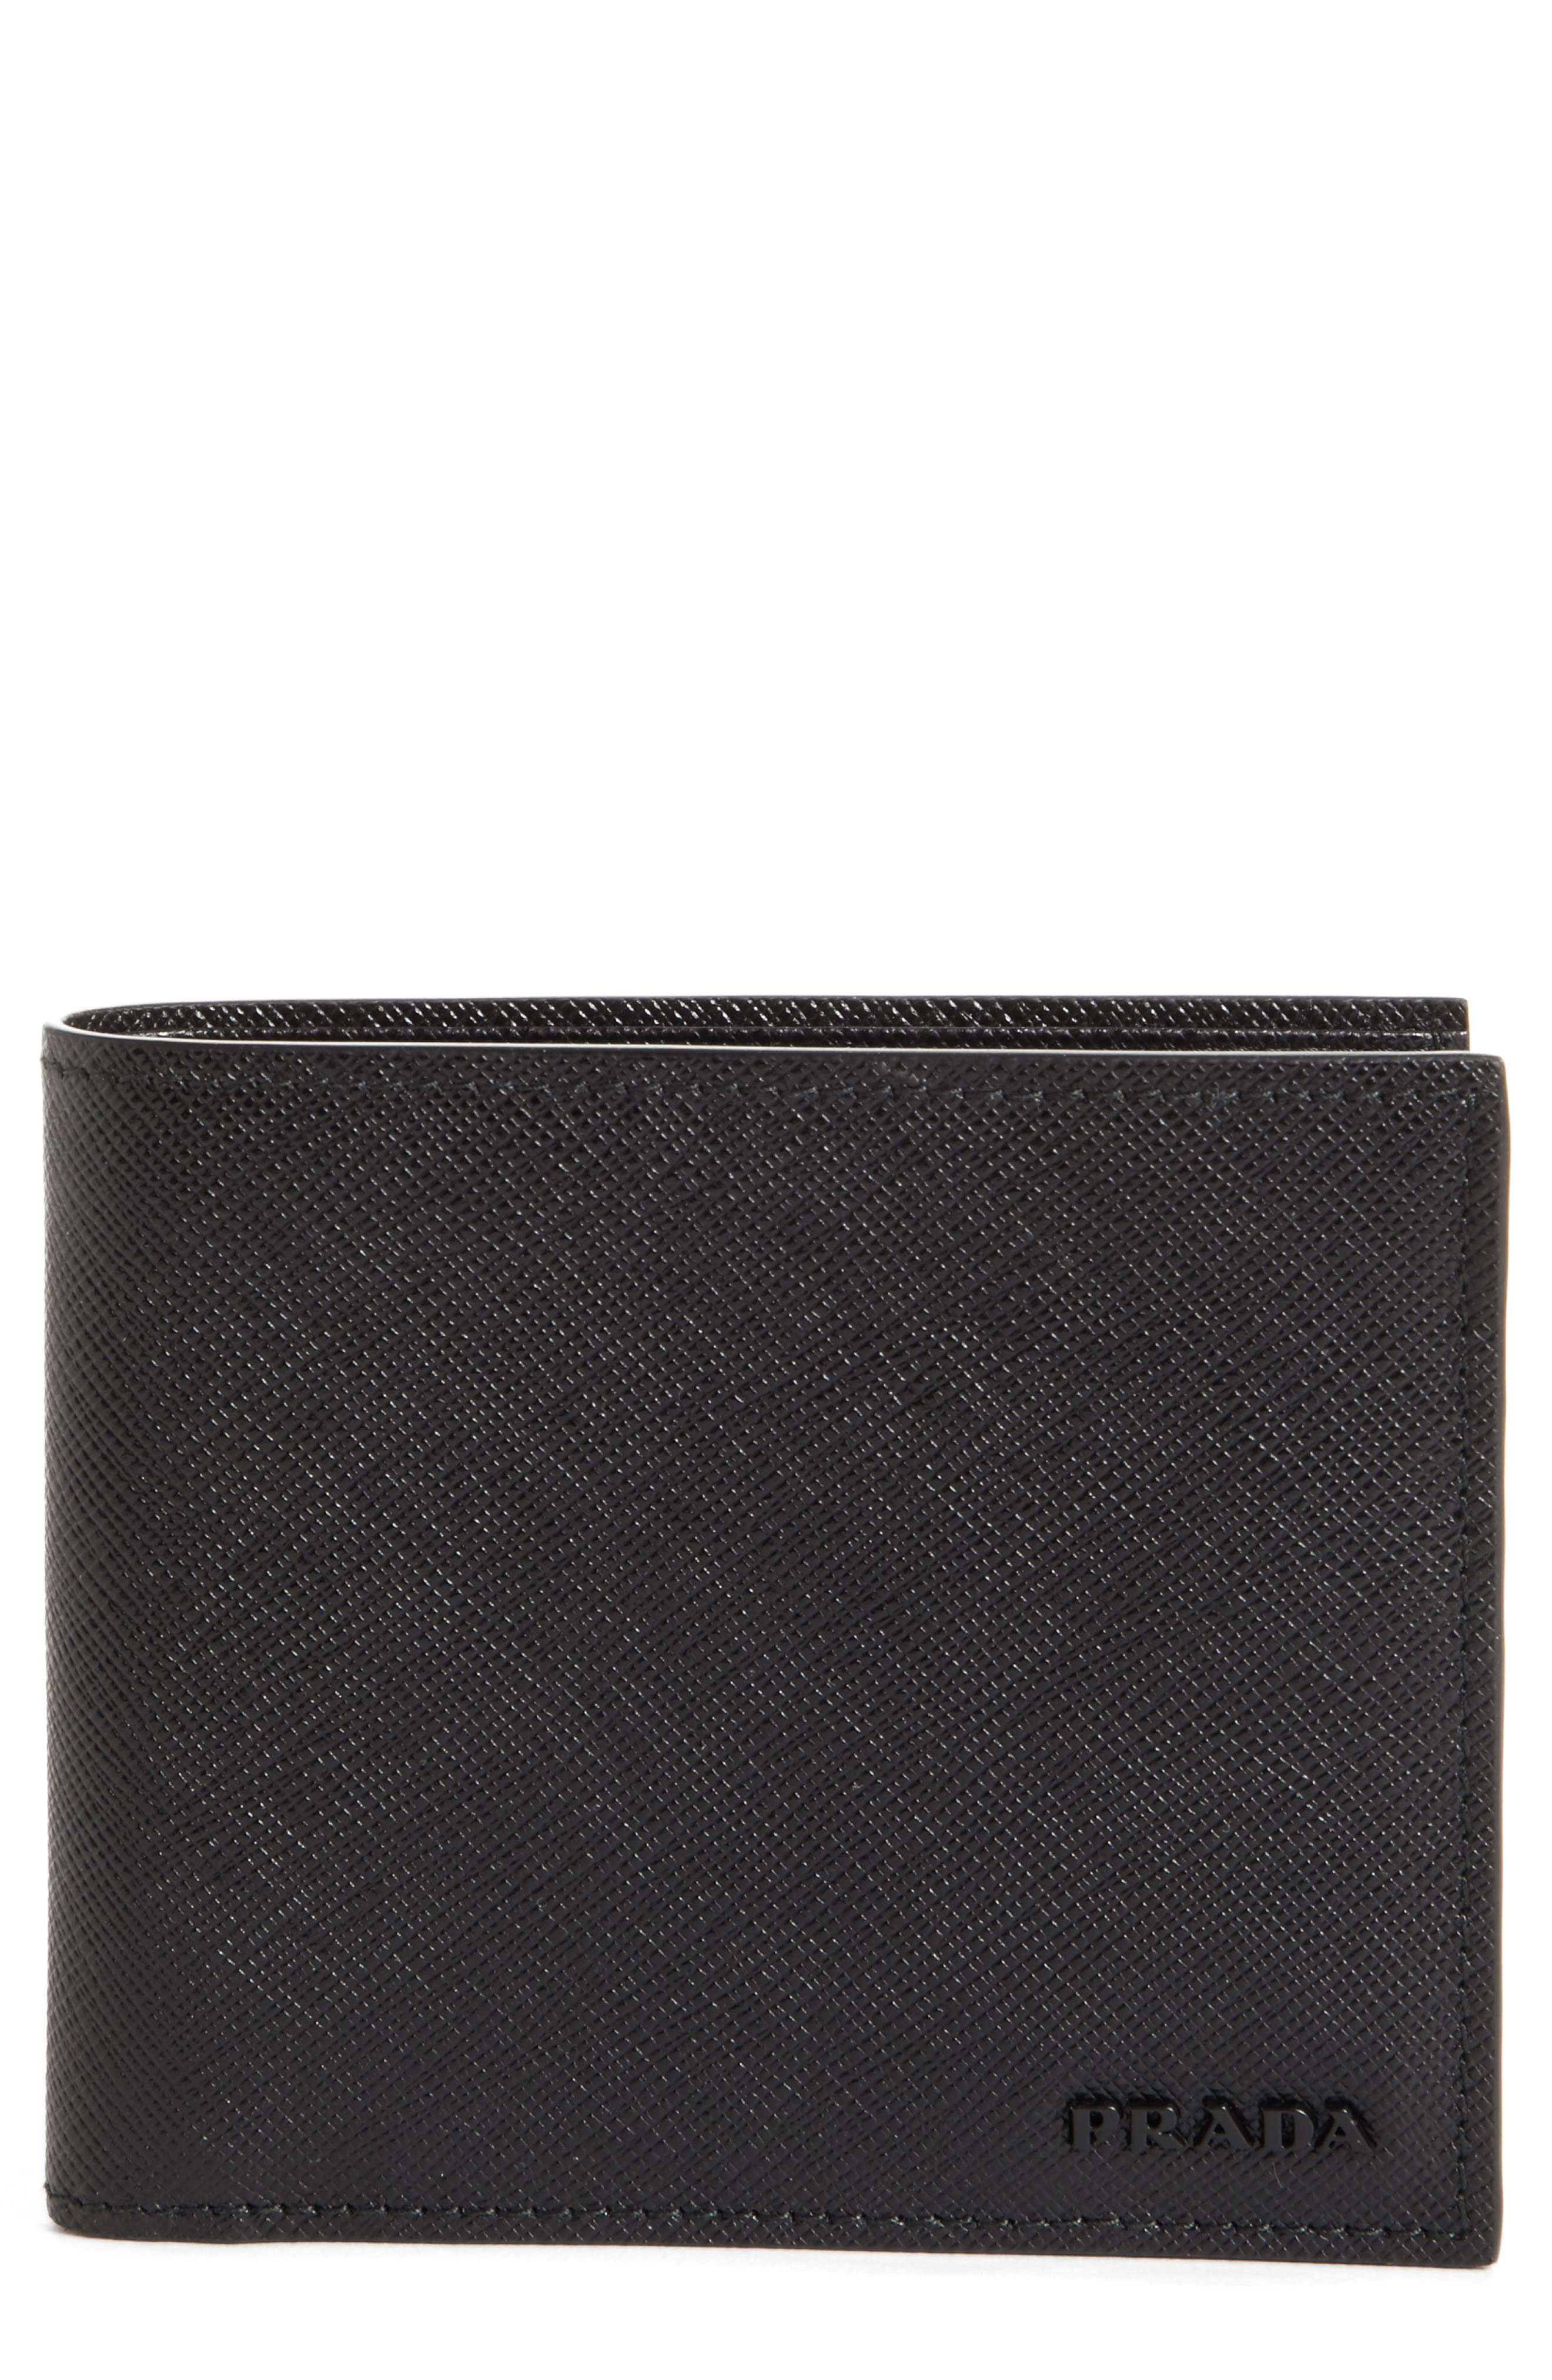 Saffiano Leather Bifold Wallet,                             Main thumbnail 1, color,                             001